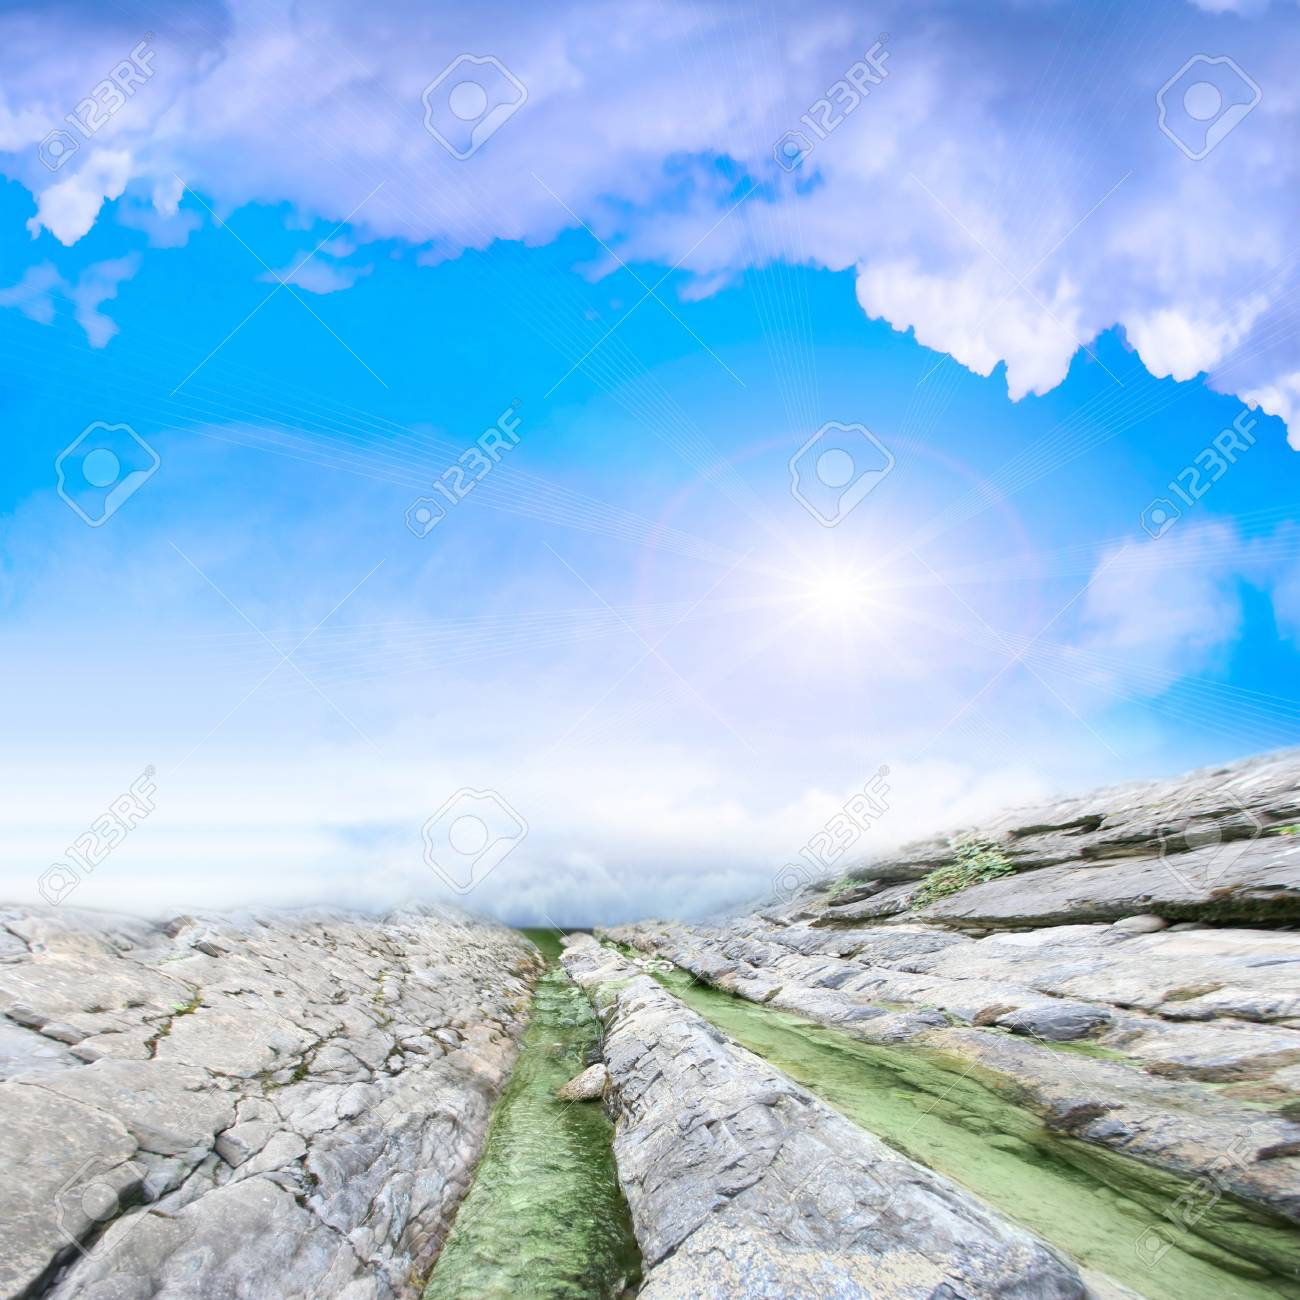 abstract scene with mountain stream as travel background Stock Photo - 9492585